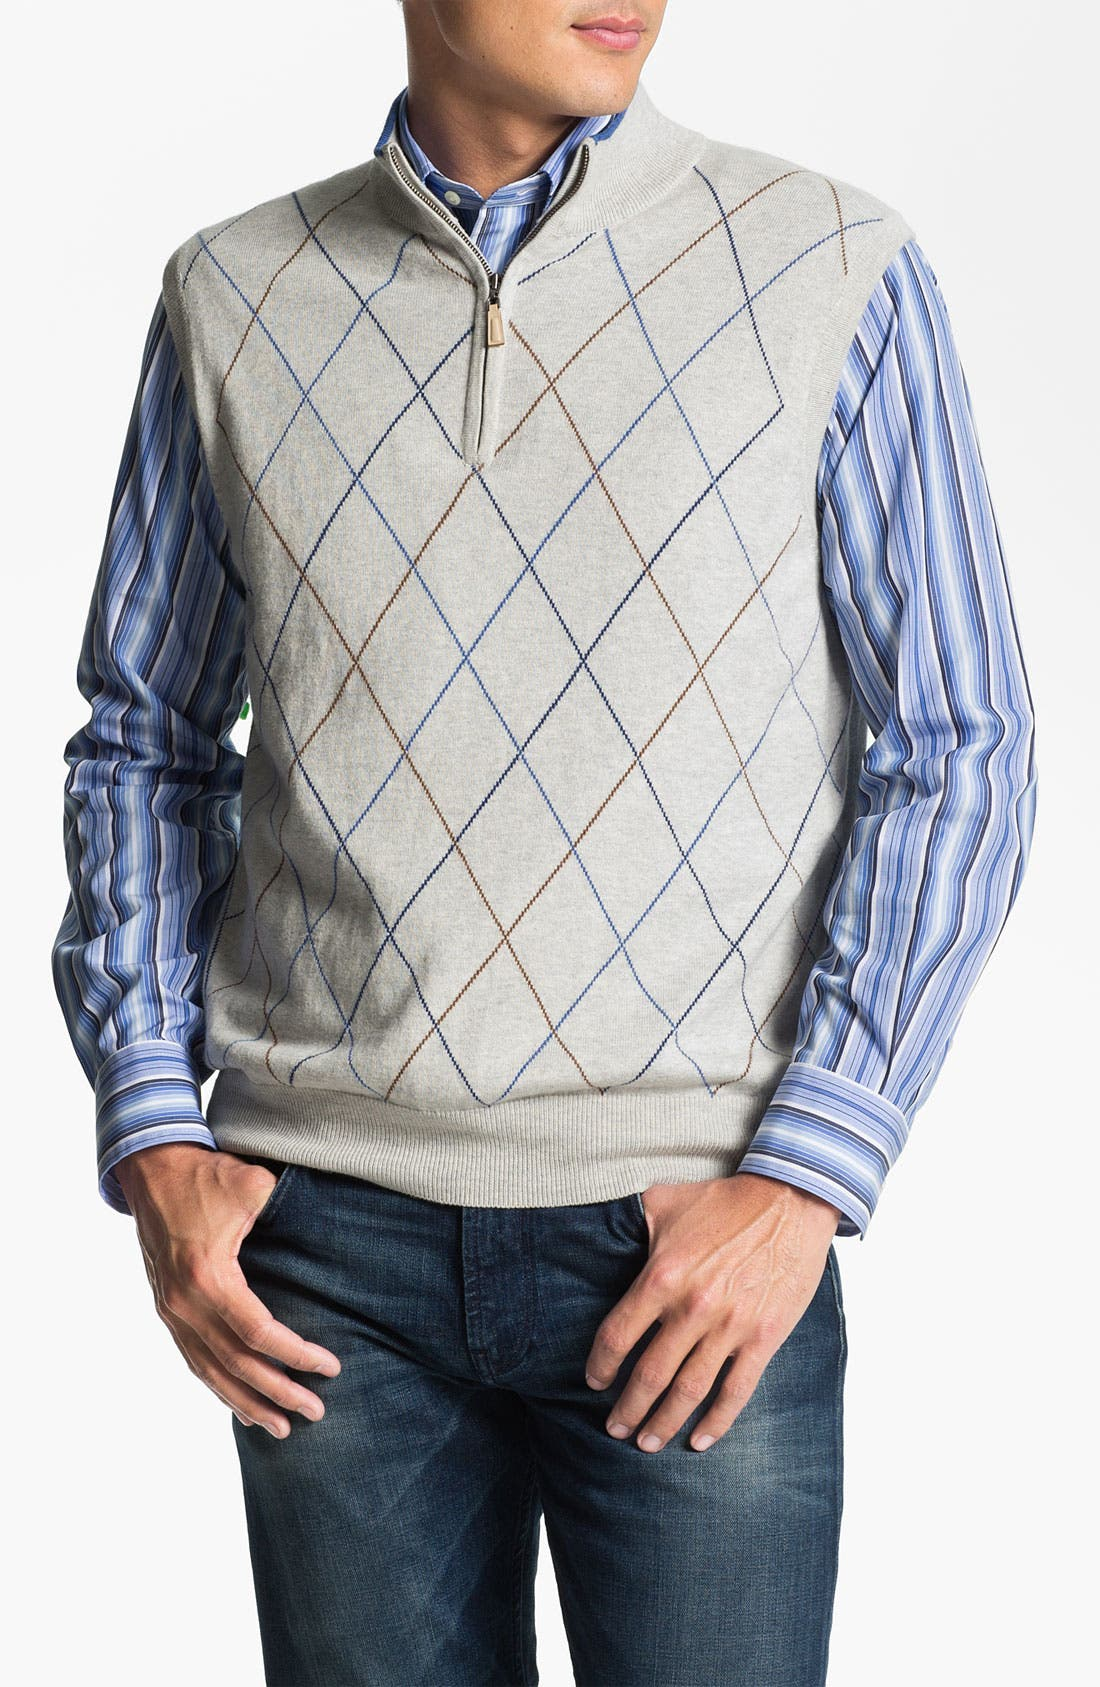 Main Image - Peter Millar Quarter Zip Cotton & Cashmere Sweater Vest